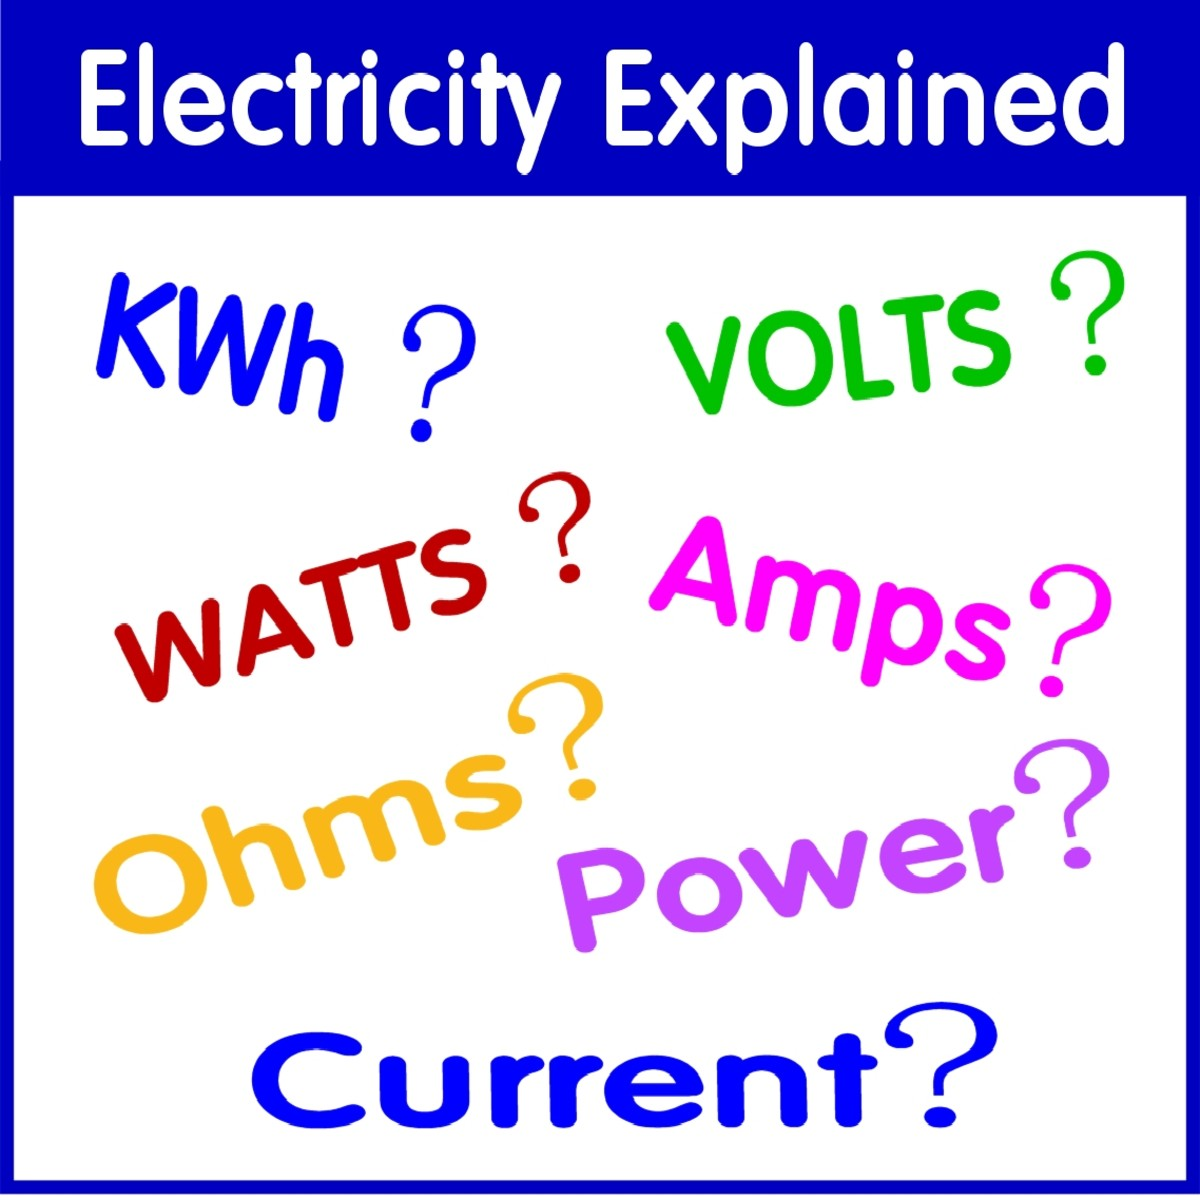 watts-amps-kilowatt-hours-what-does-it-all-mean